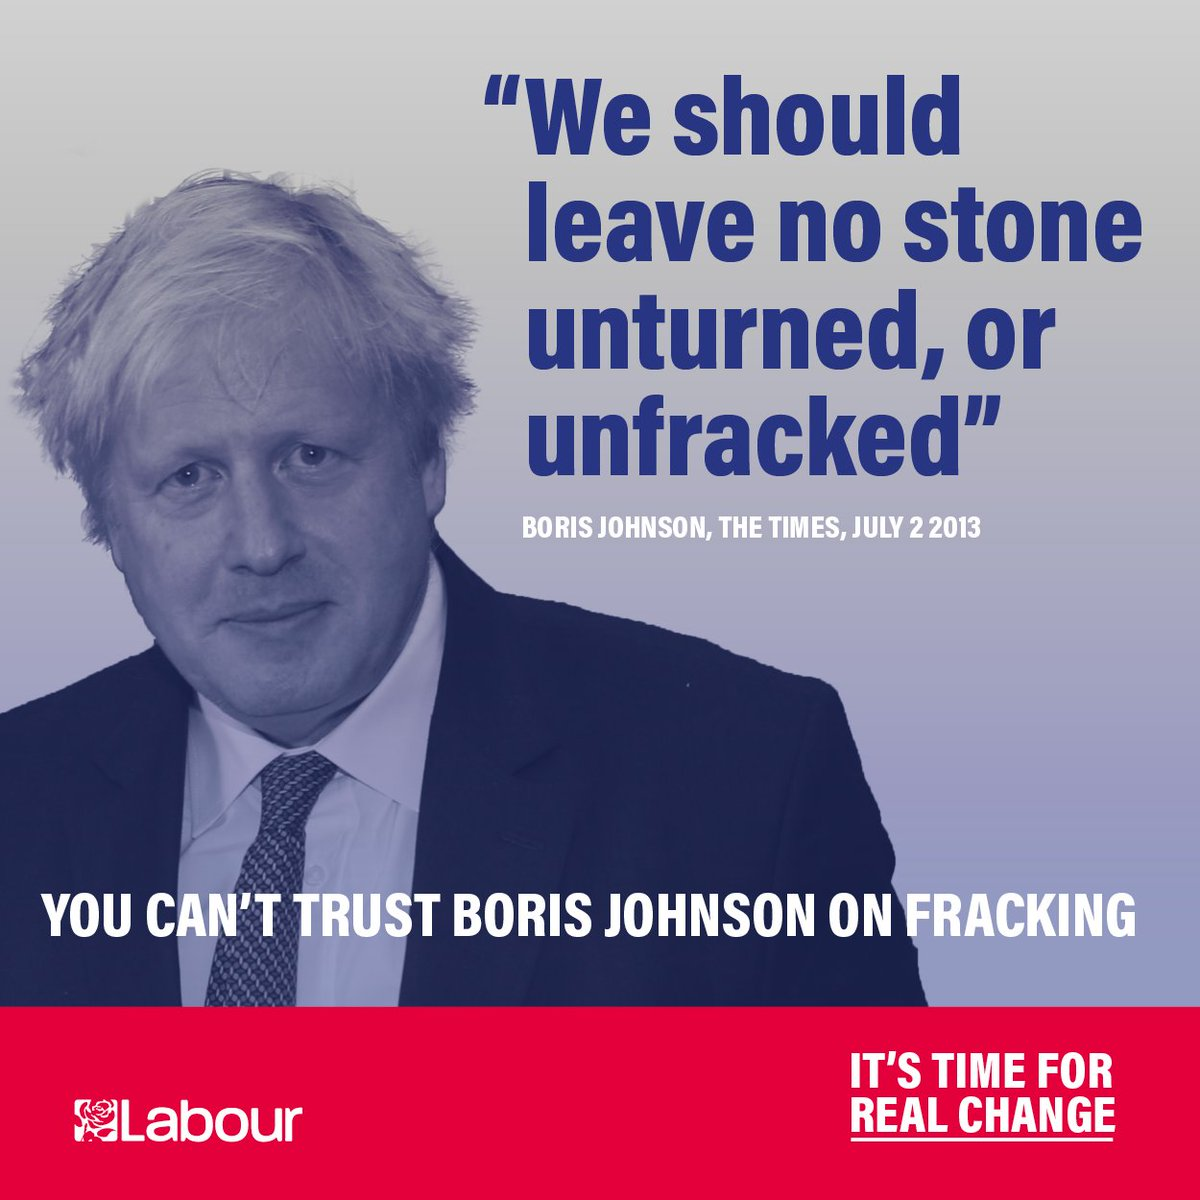 The Tories pushed through fracking - you cant trust them to tackle the climate emergency. Labours Green Industrial Revolution will 🛢️🏞️ Ban fracking 🌊☀️ Create more than a million good, green jobs 🚗🔌 Kickstart an electric vehicle revolution 🏡👷 Insulate 27 million homes